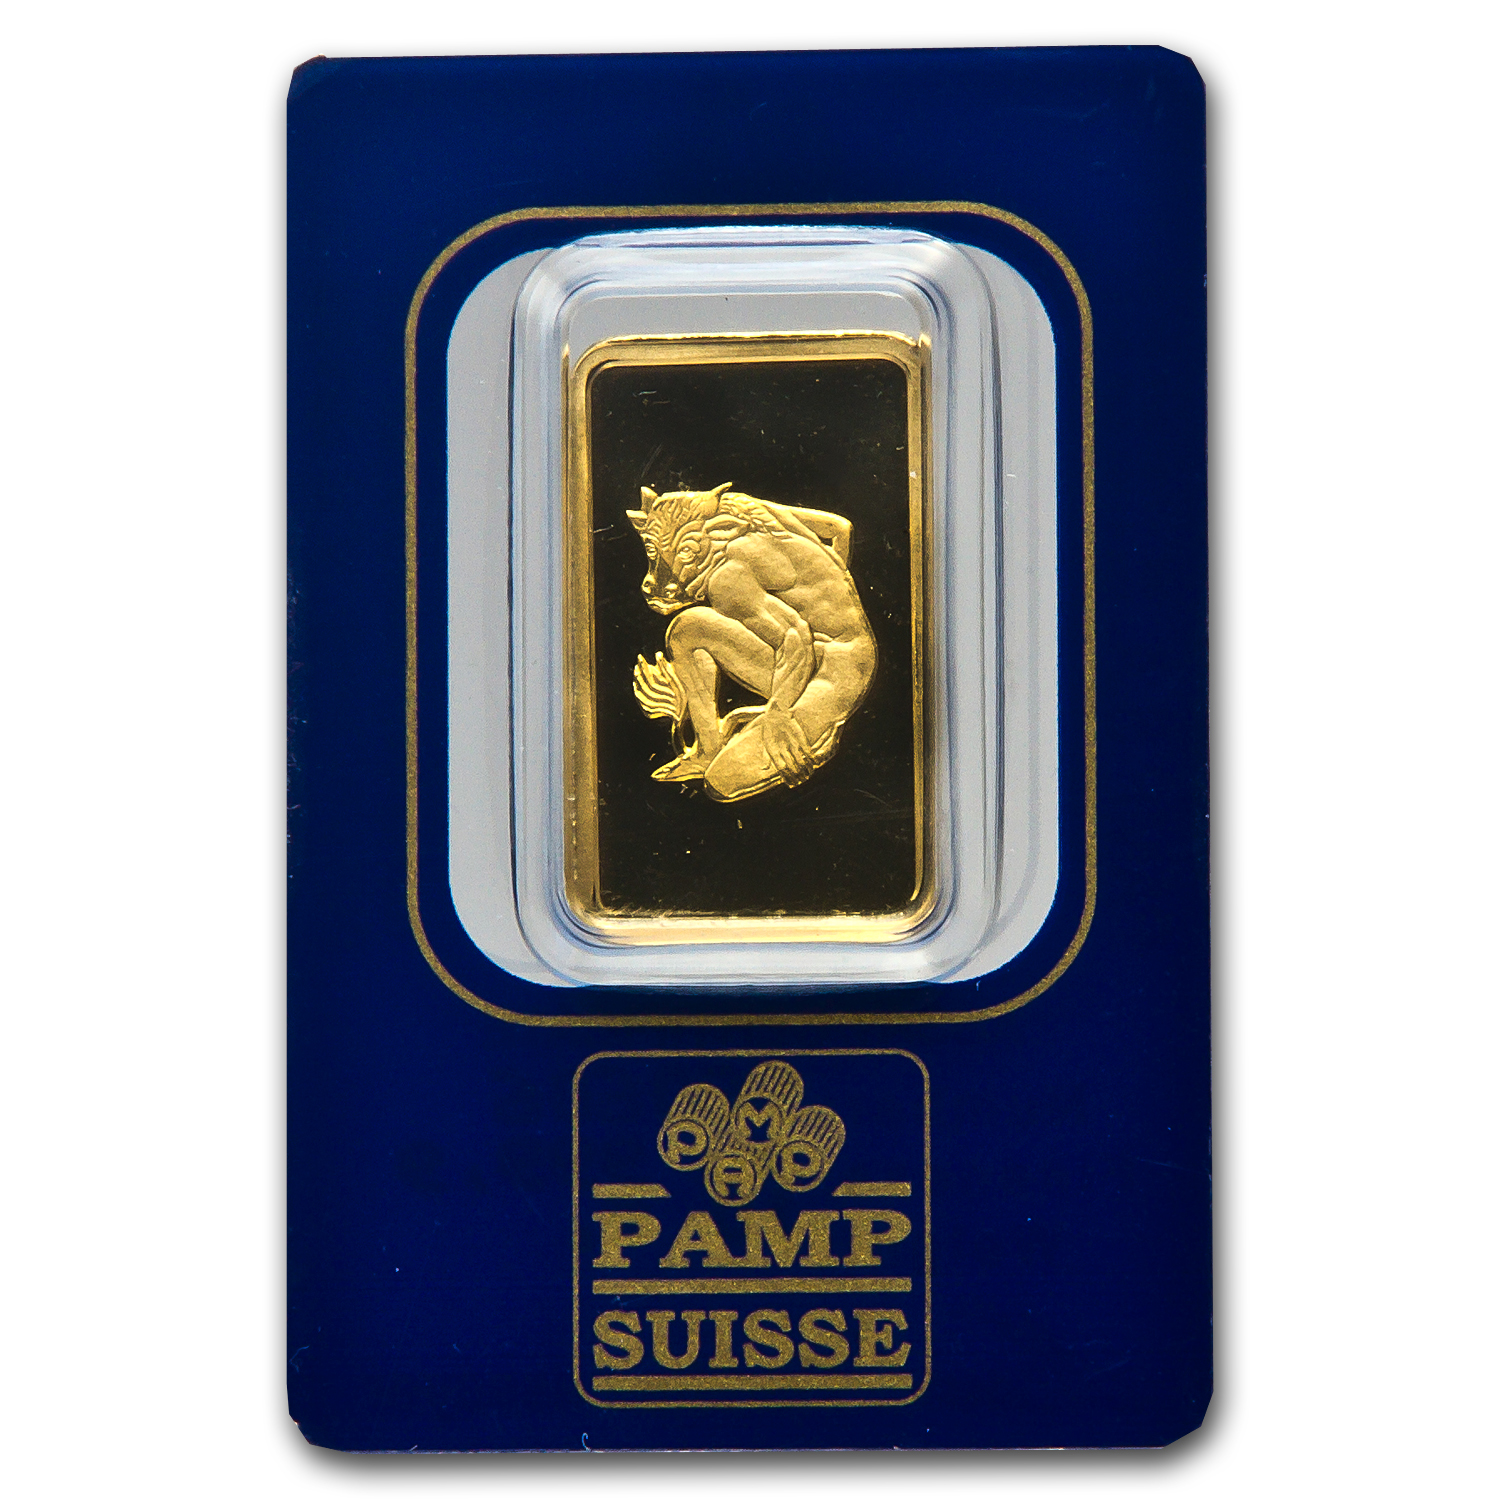 10 gram Gold Bar - Pamp Suisse Taurus the Bull (In assay)